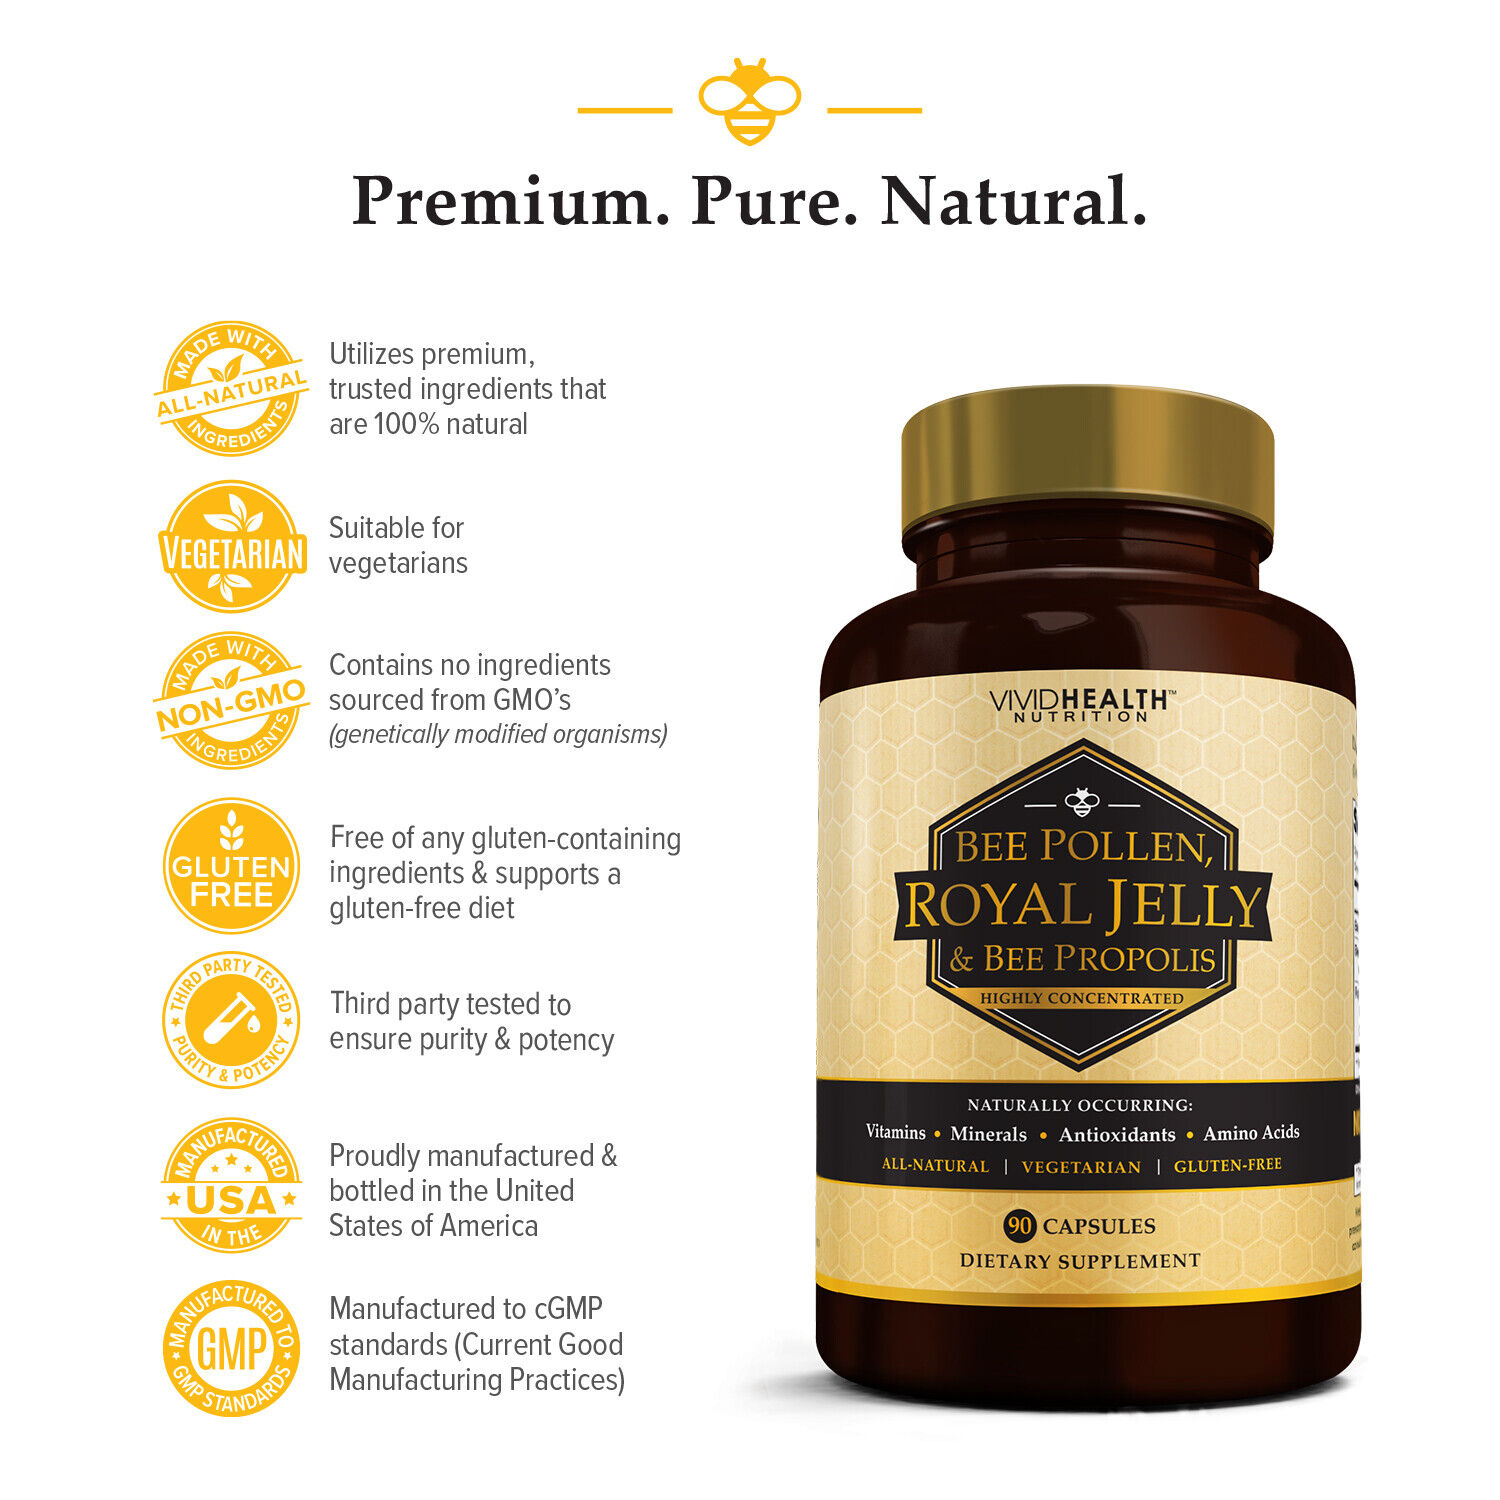 Immune Boosting, Pure ROYAL JELLY BEE POLLEN Supplement w/ BEE PROPOLIS by VHN 2